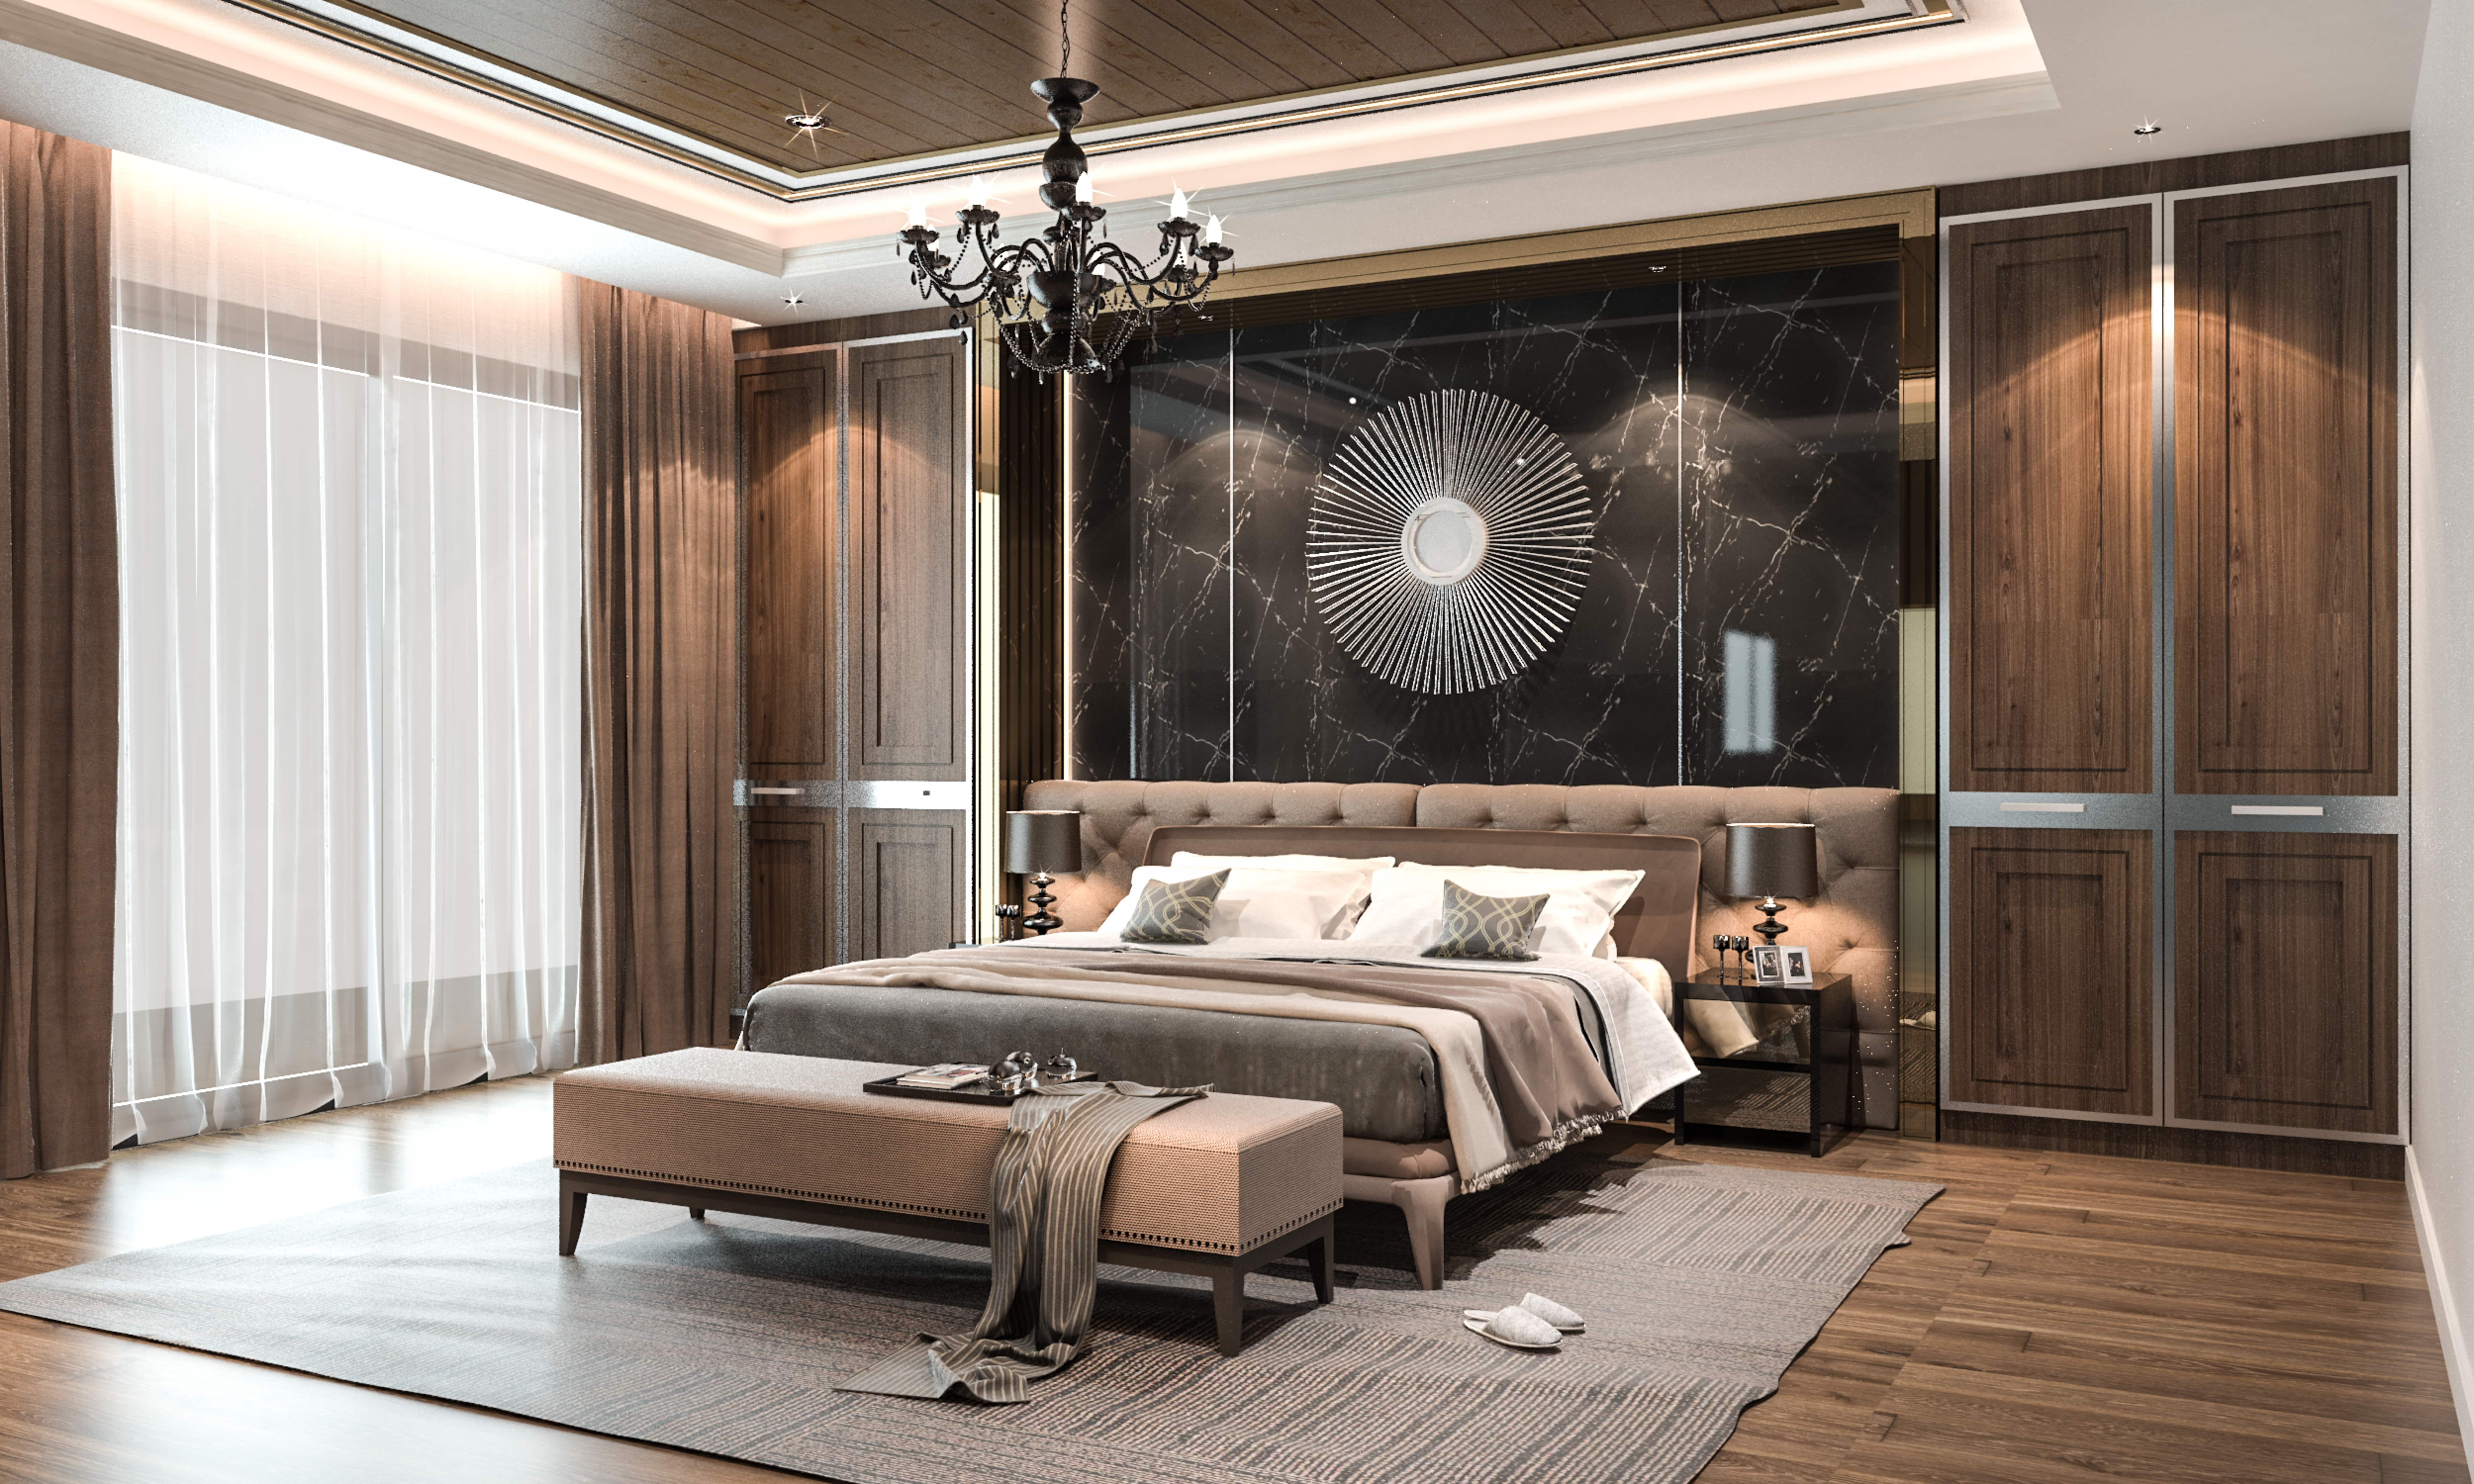 Luxurious Bed Room Design